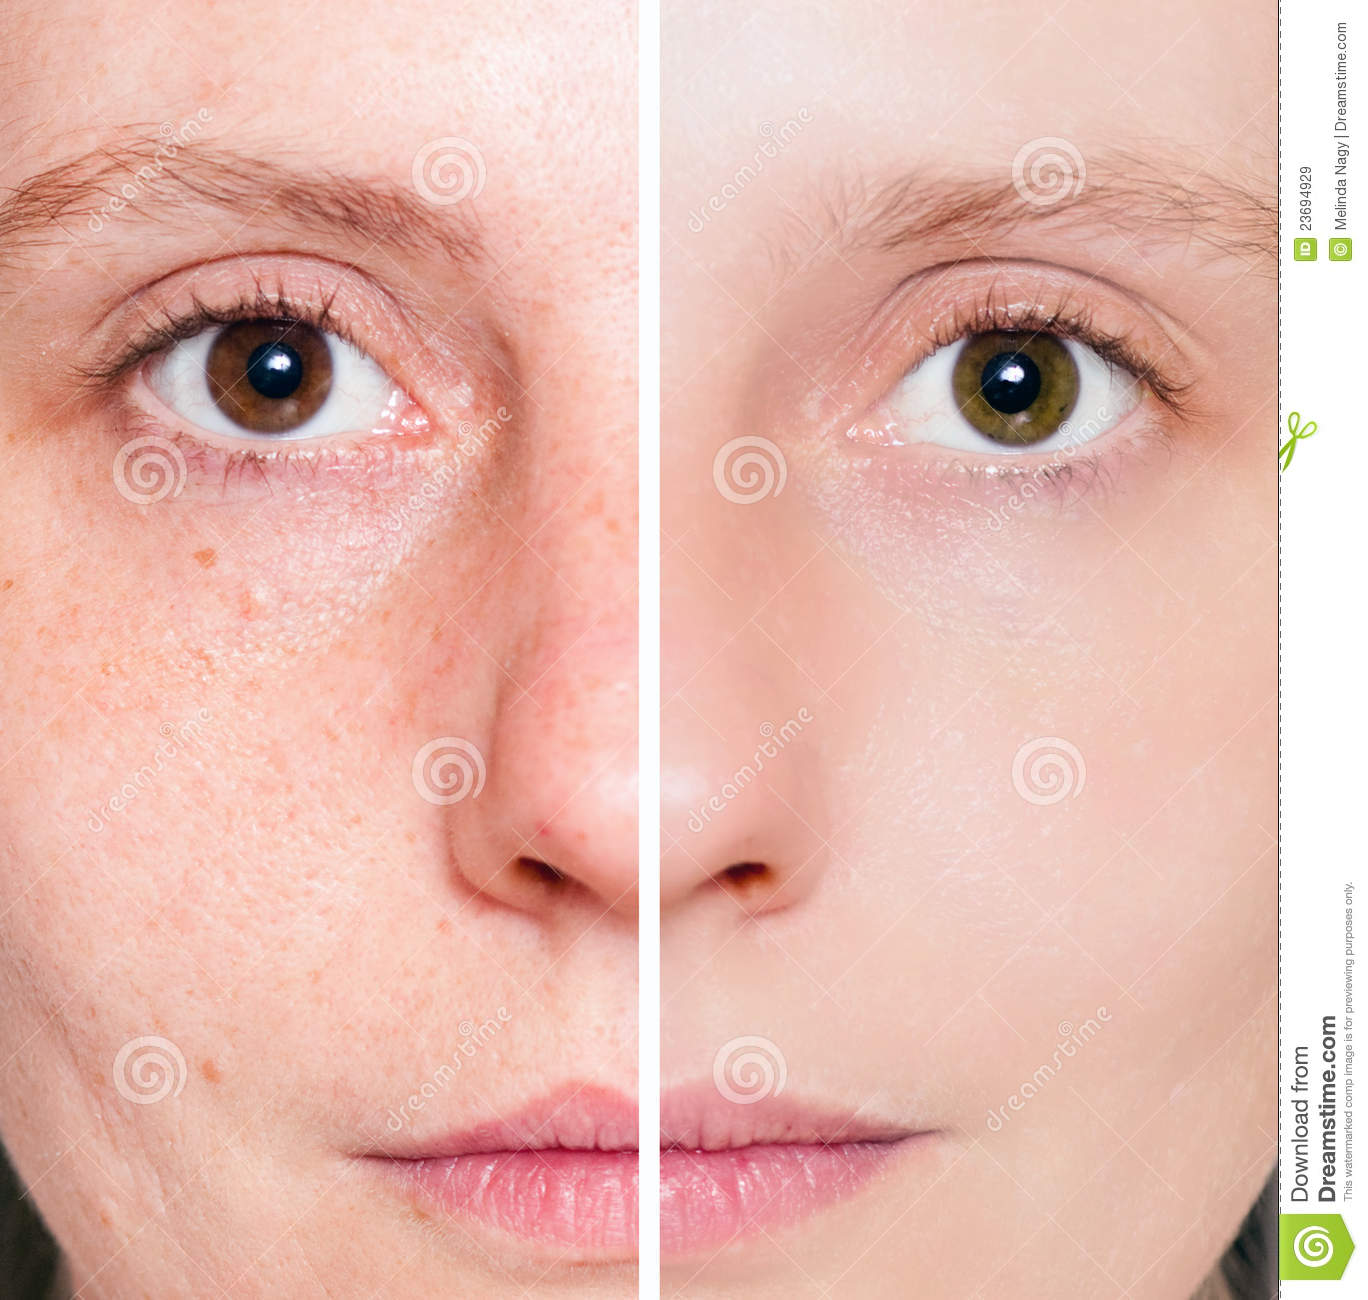 your skin will be more clear than ever and you will have more confidence!